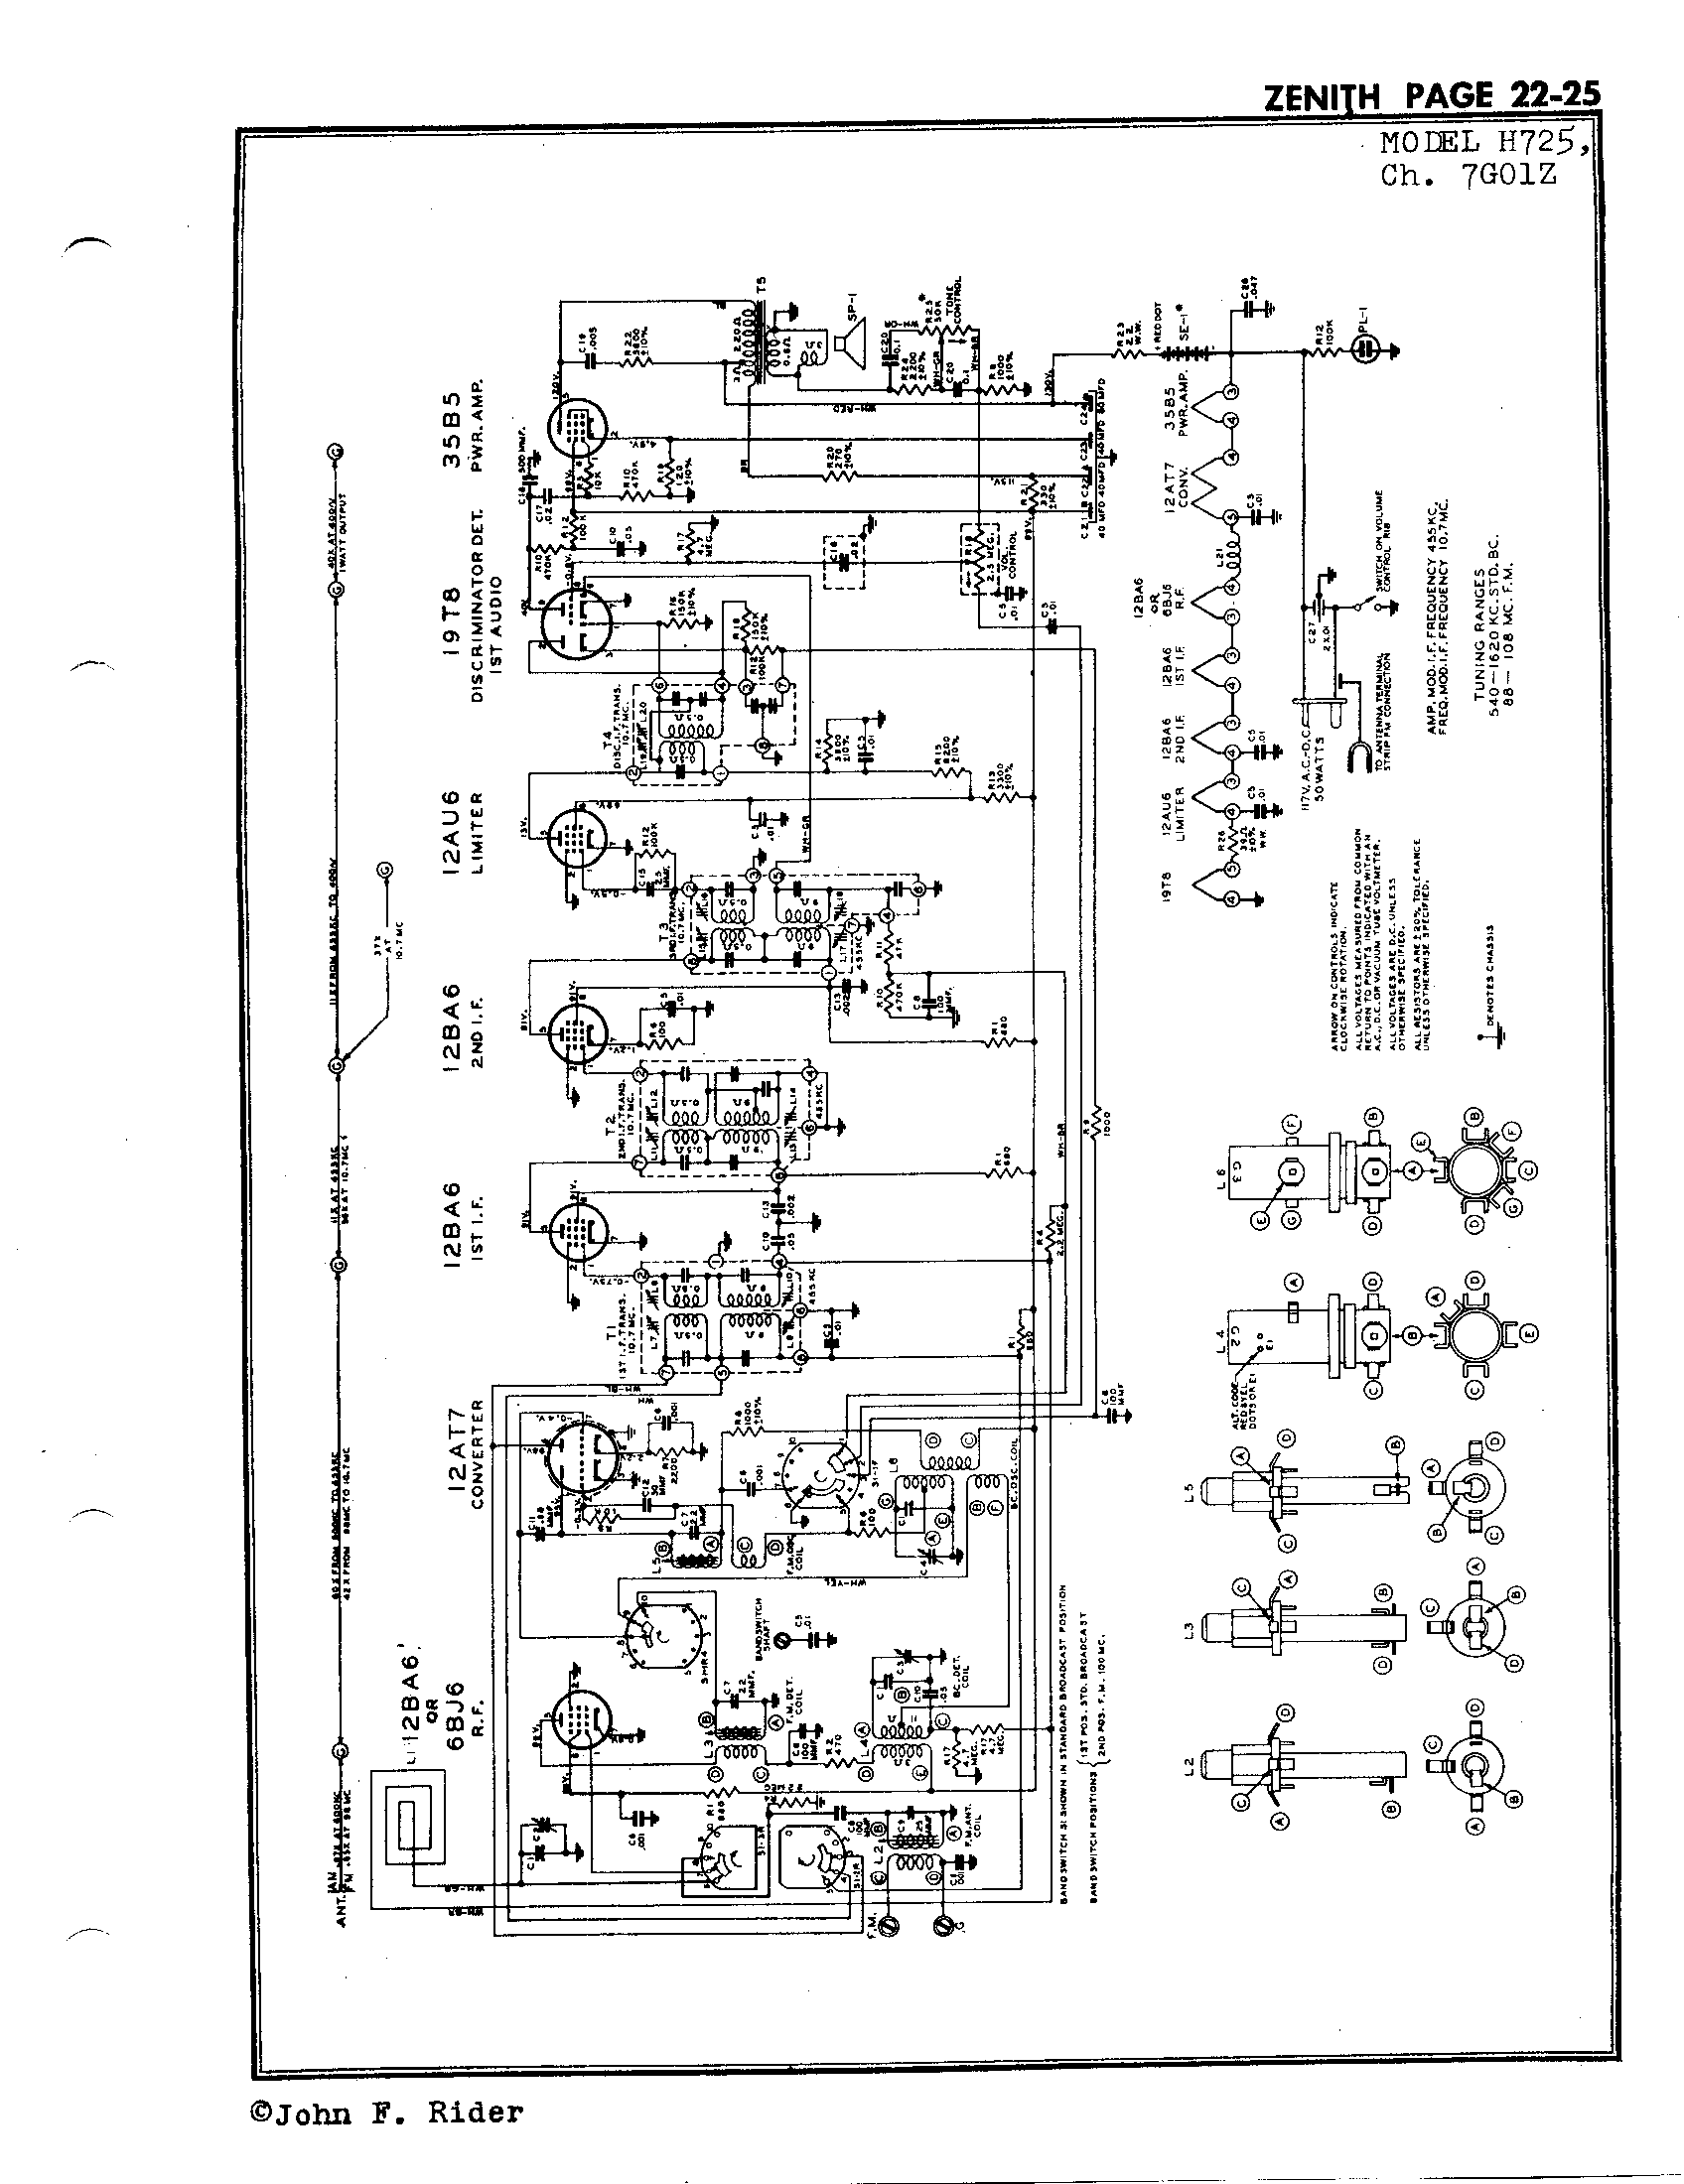 Zenith Radio Corp H725 Antique Electronic Supply. Page 3 6246 Kb Rider Manual Volume 22. Wiring. Zenith Tube Clock Radio Schematics At Scoala.co